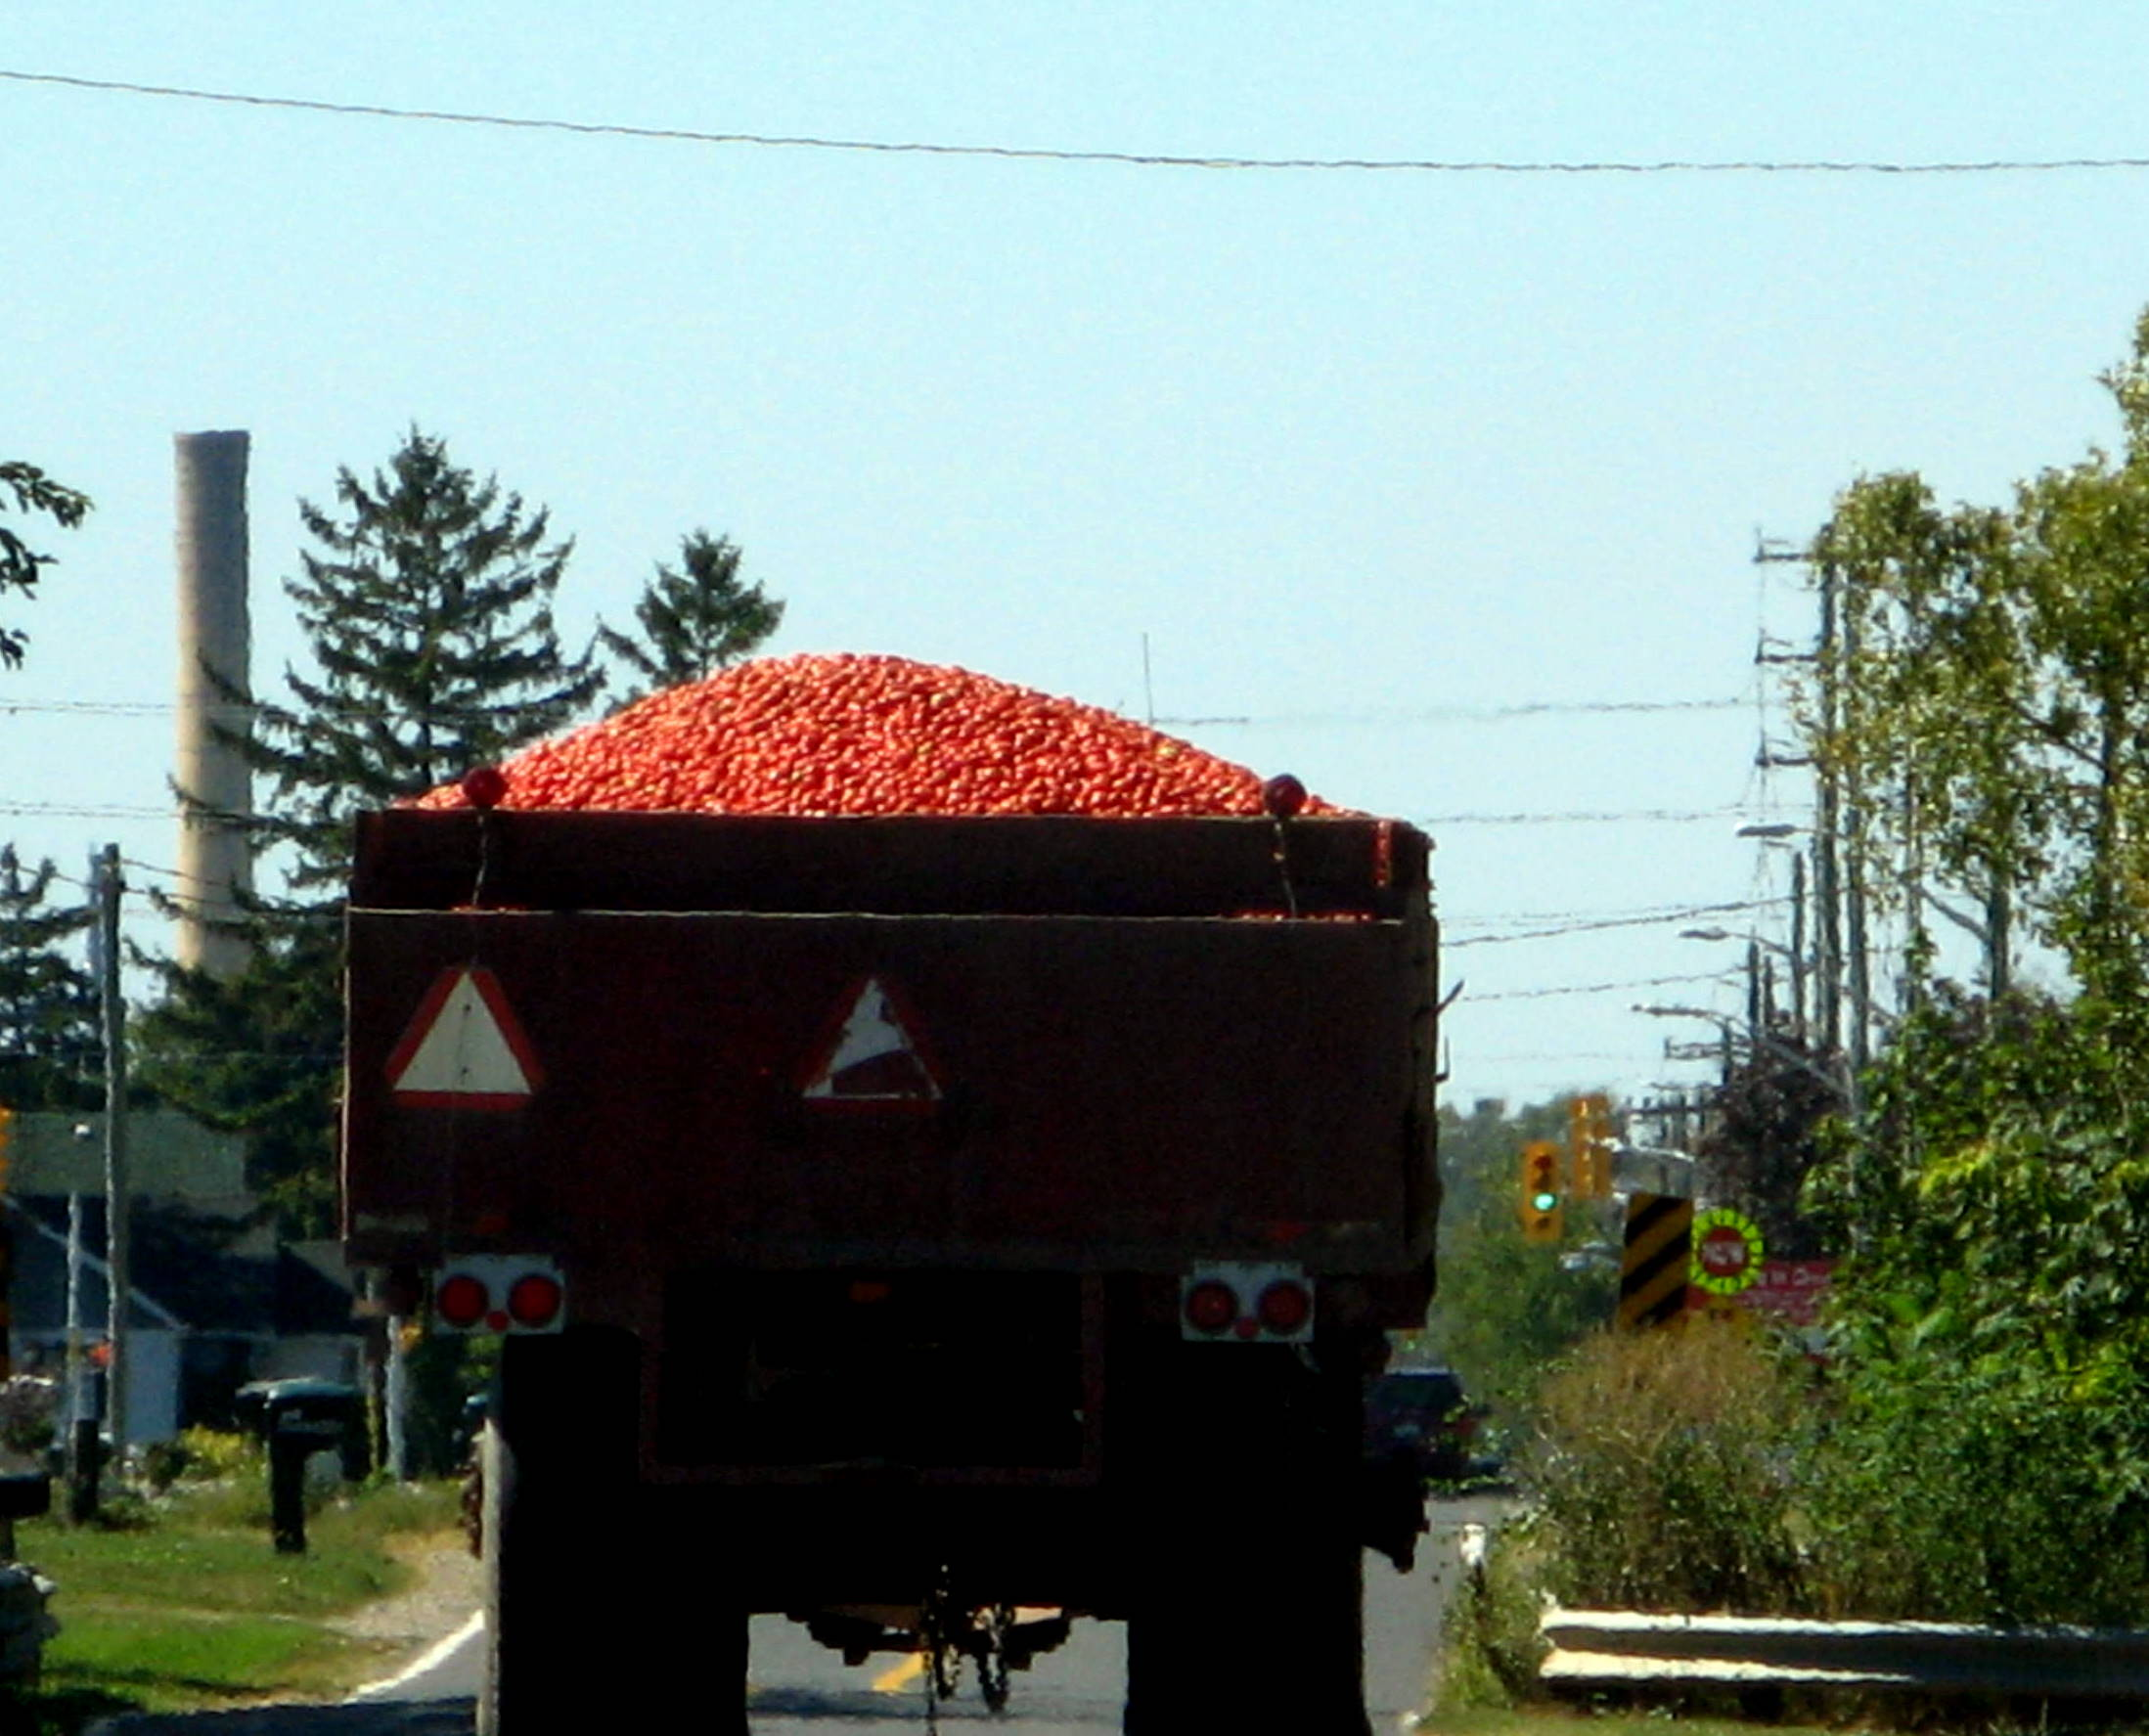 Tomatoes being transported in Leamington, Ontario.jpg